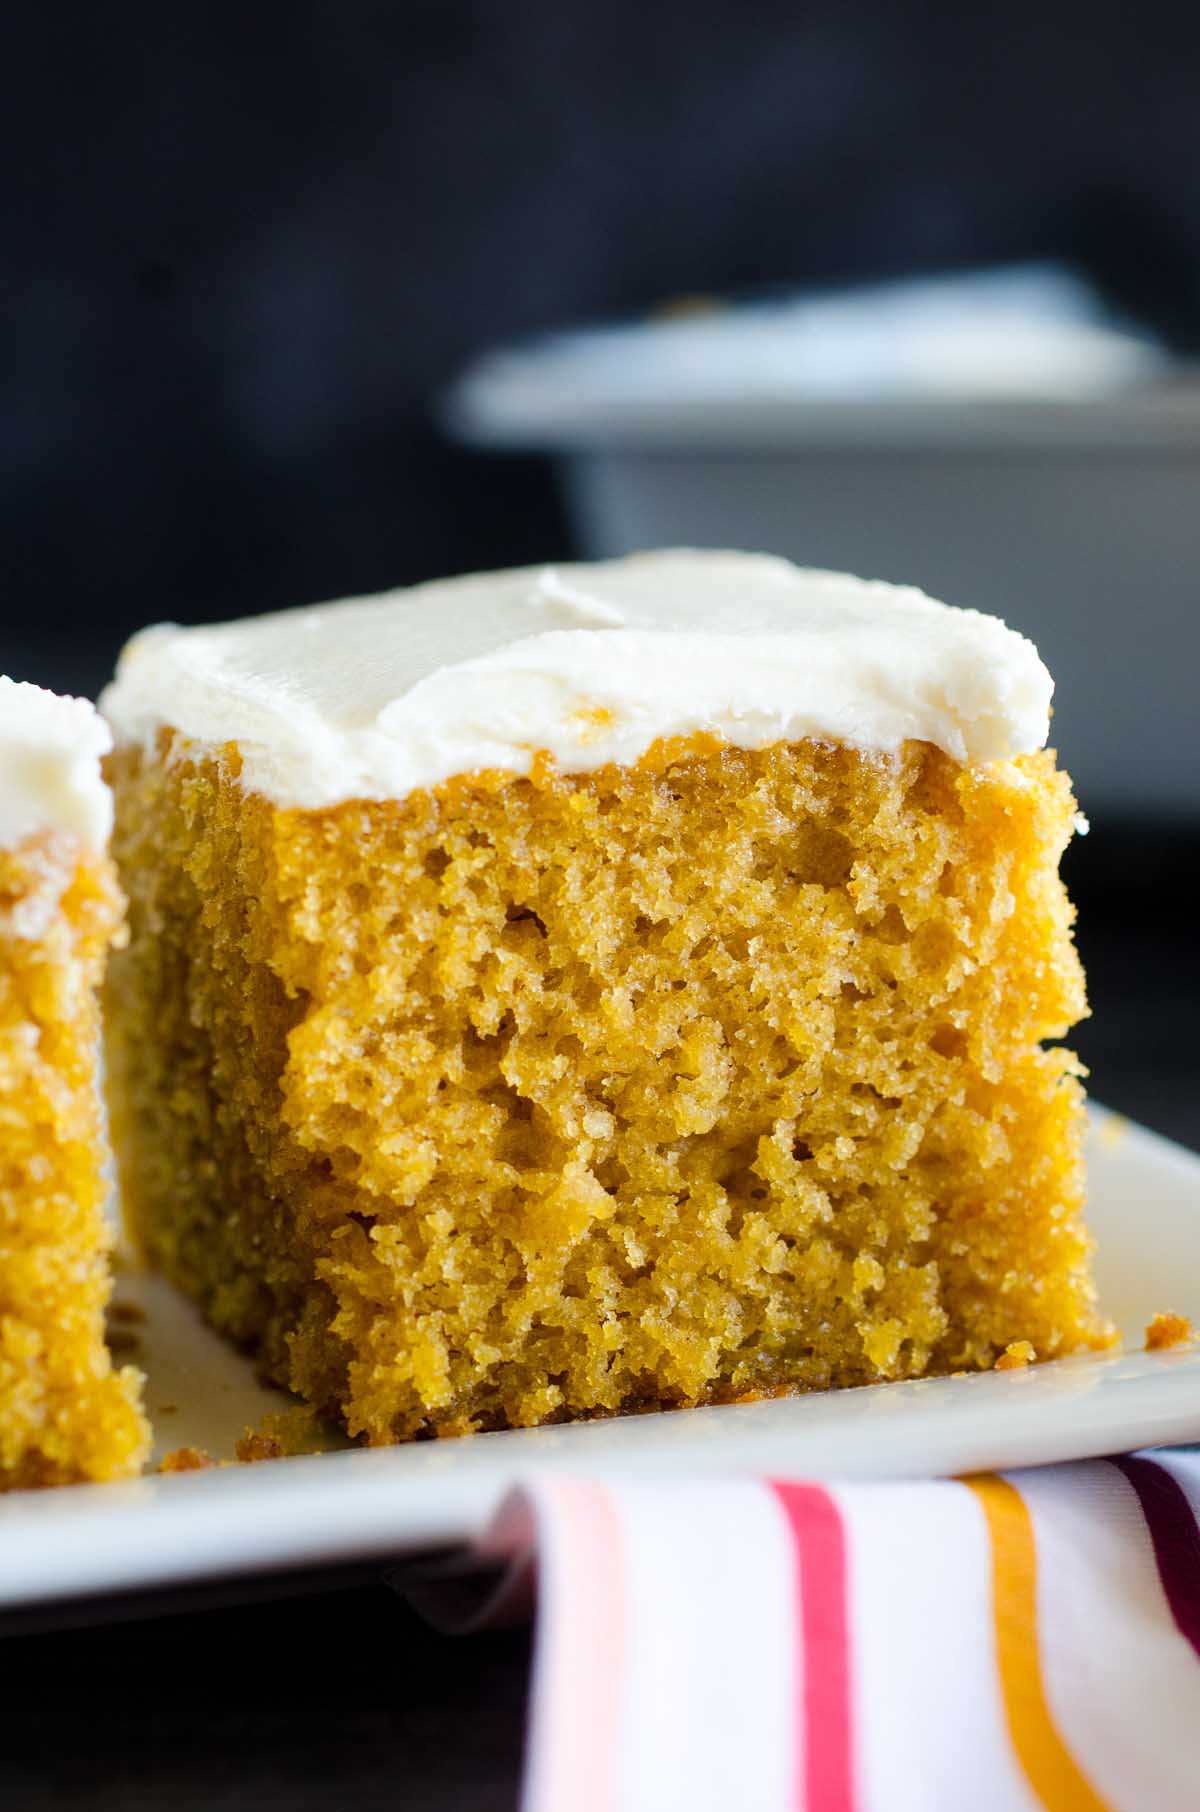 pumpkin bar with cream cheese frosting on a plate